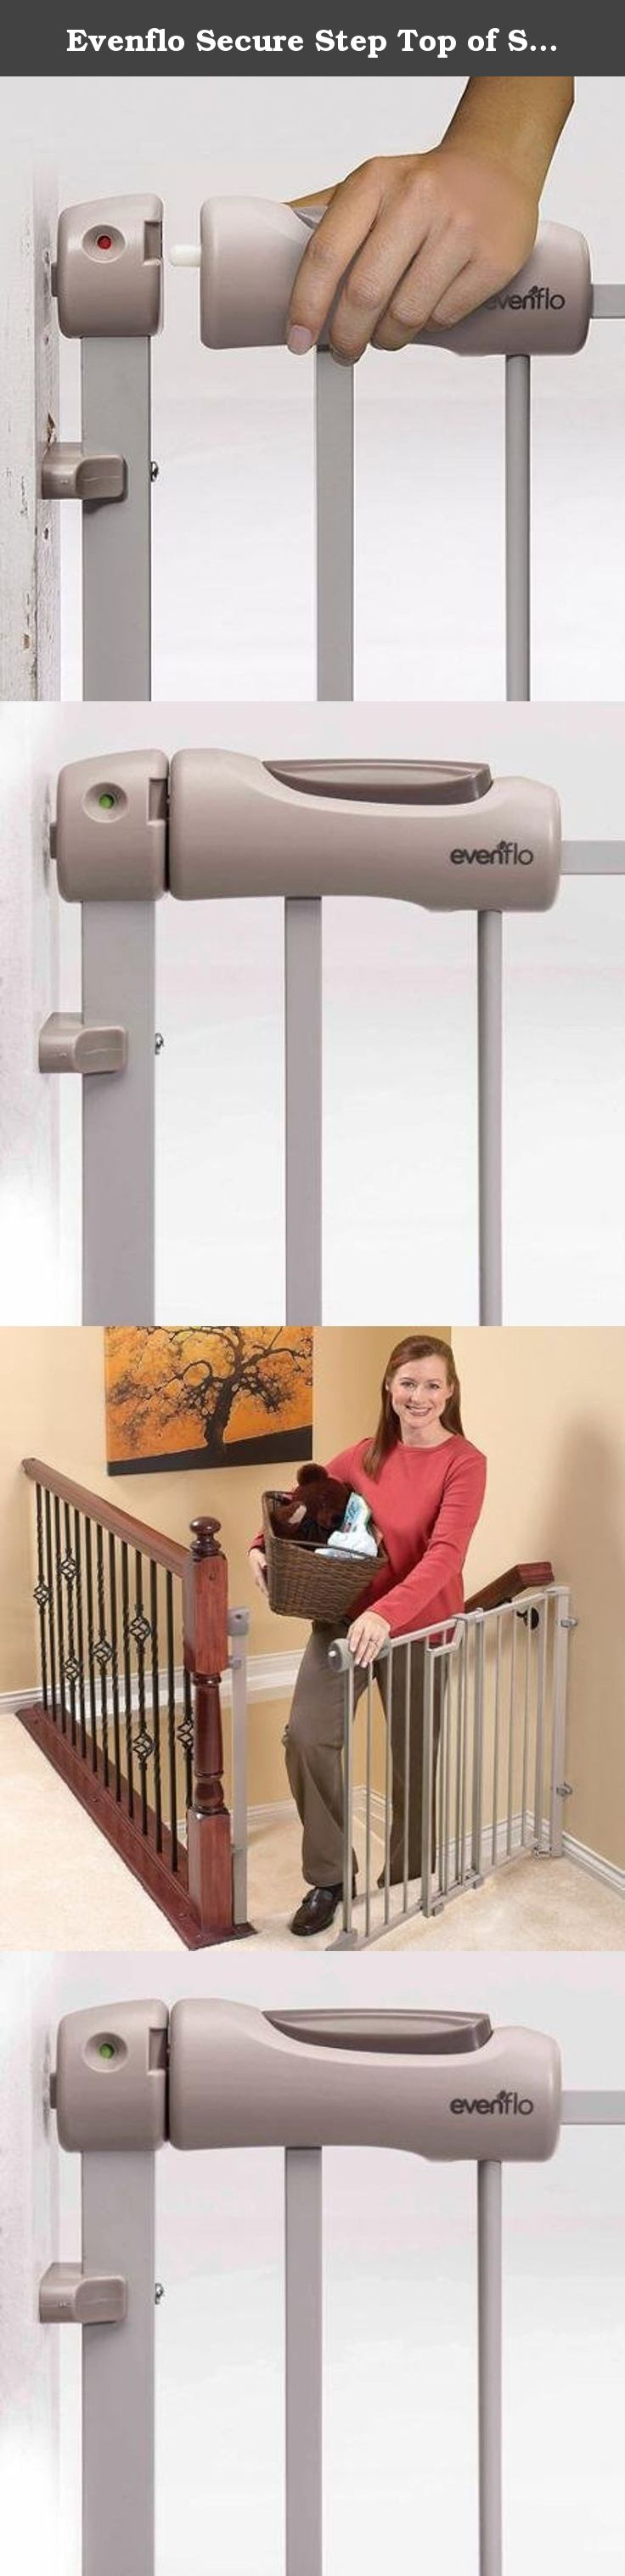 Evenflo Secure Step Top of Stairs Gate, Metal, Brown. The